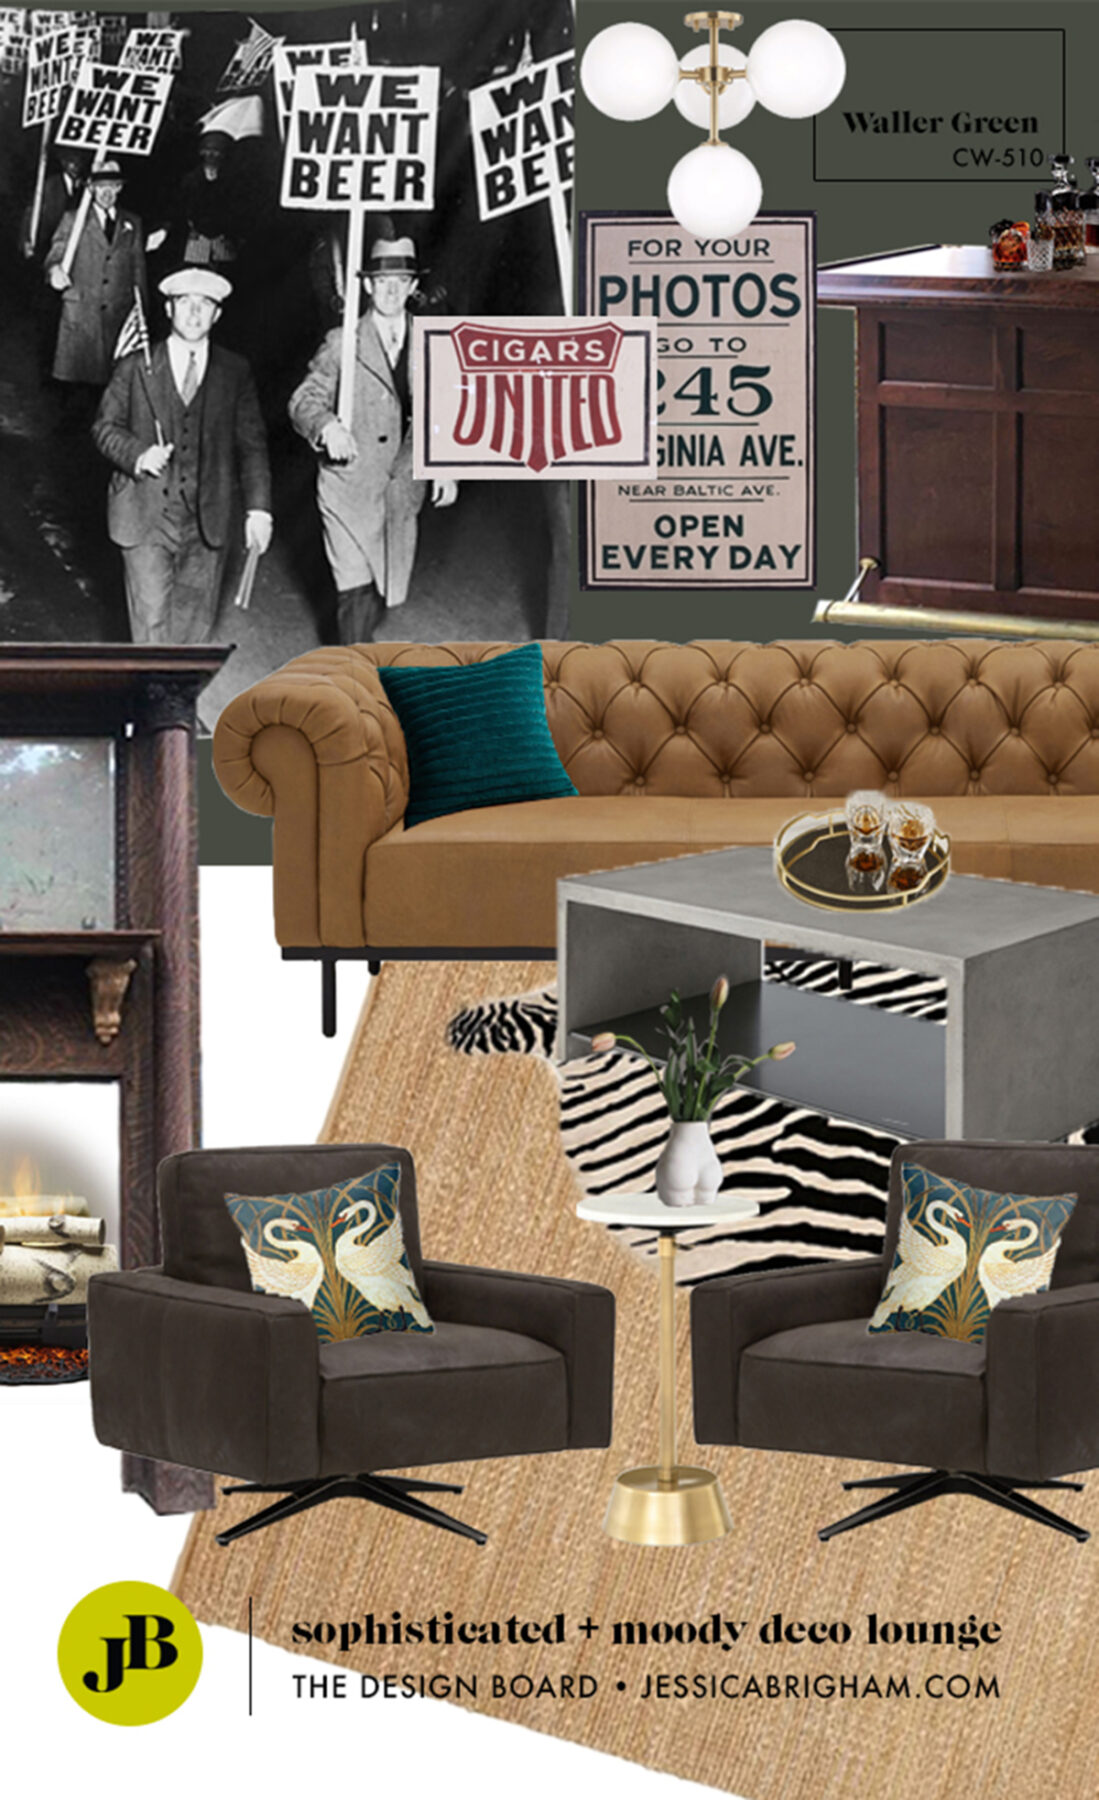 Design Board | Sophisticated + Moody Deco Lounge | Speakeasy Motif | Swanky Retreat | Basement Restoration | Basement Renovation | JessicaBrigham.com